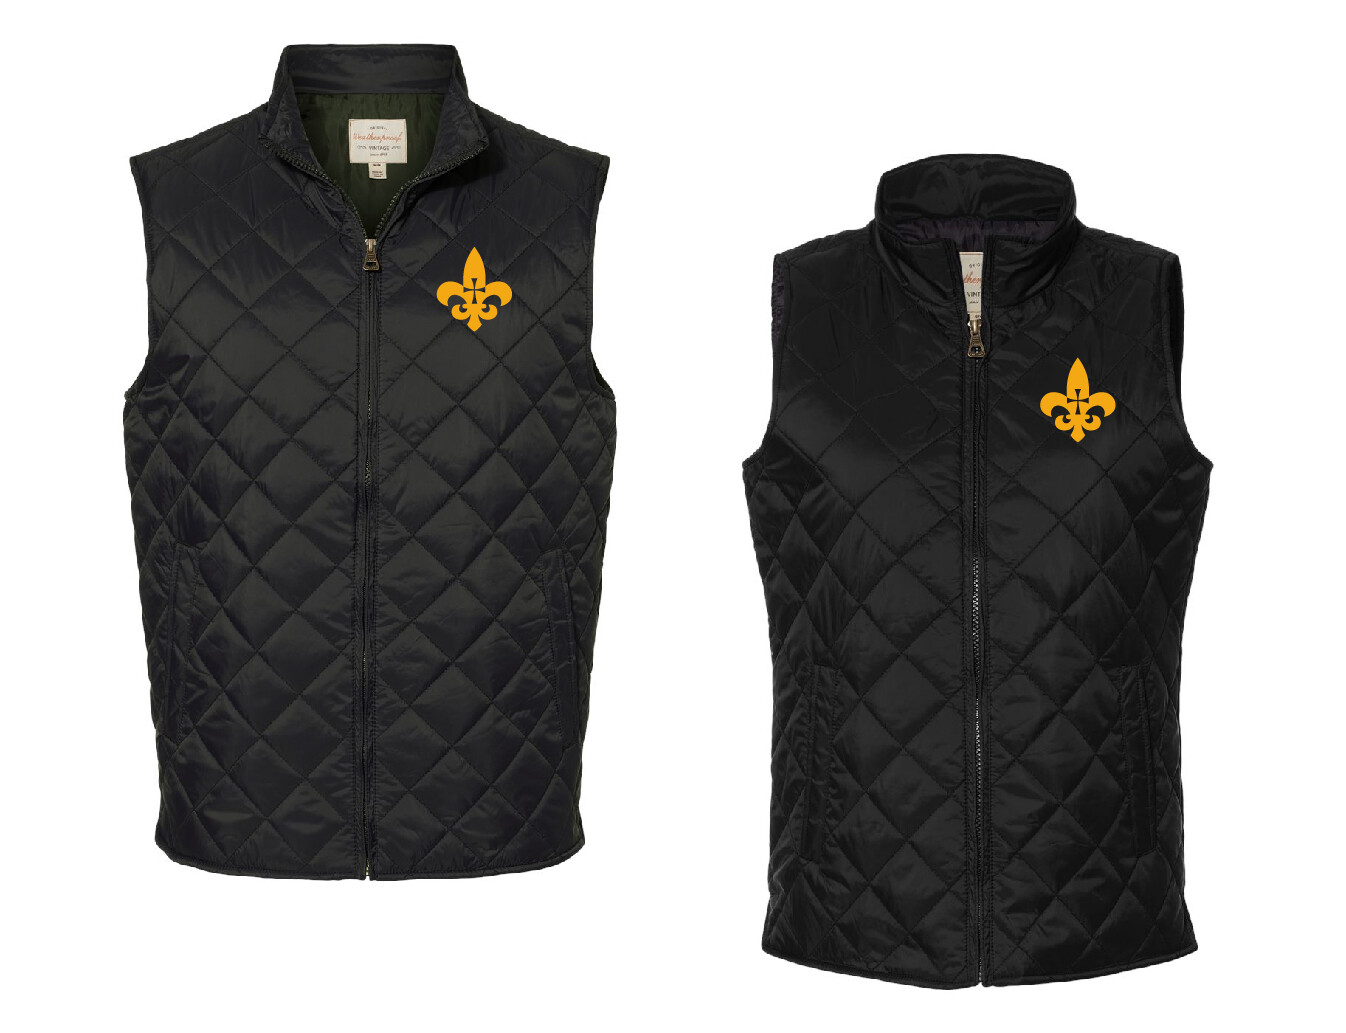 St. James Saints Diamond Quilted Vest Men's / Women's